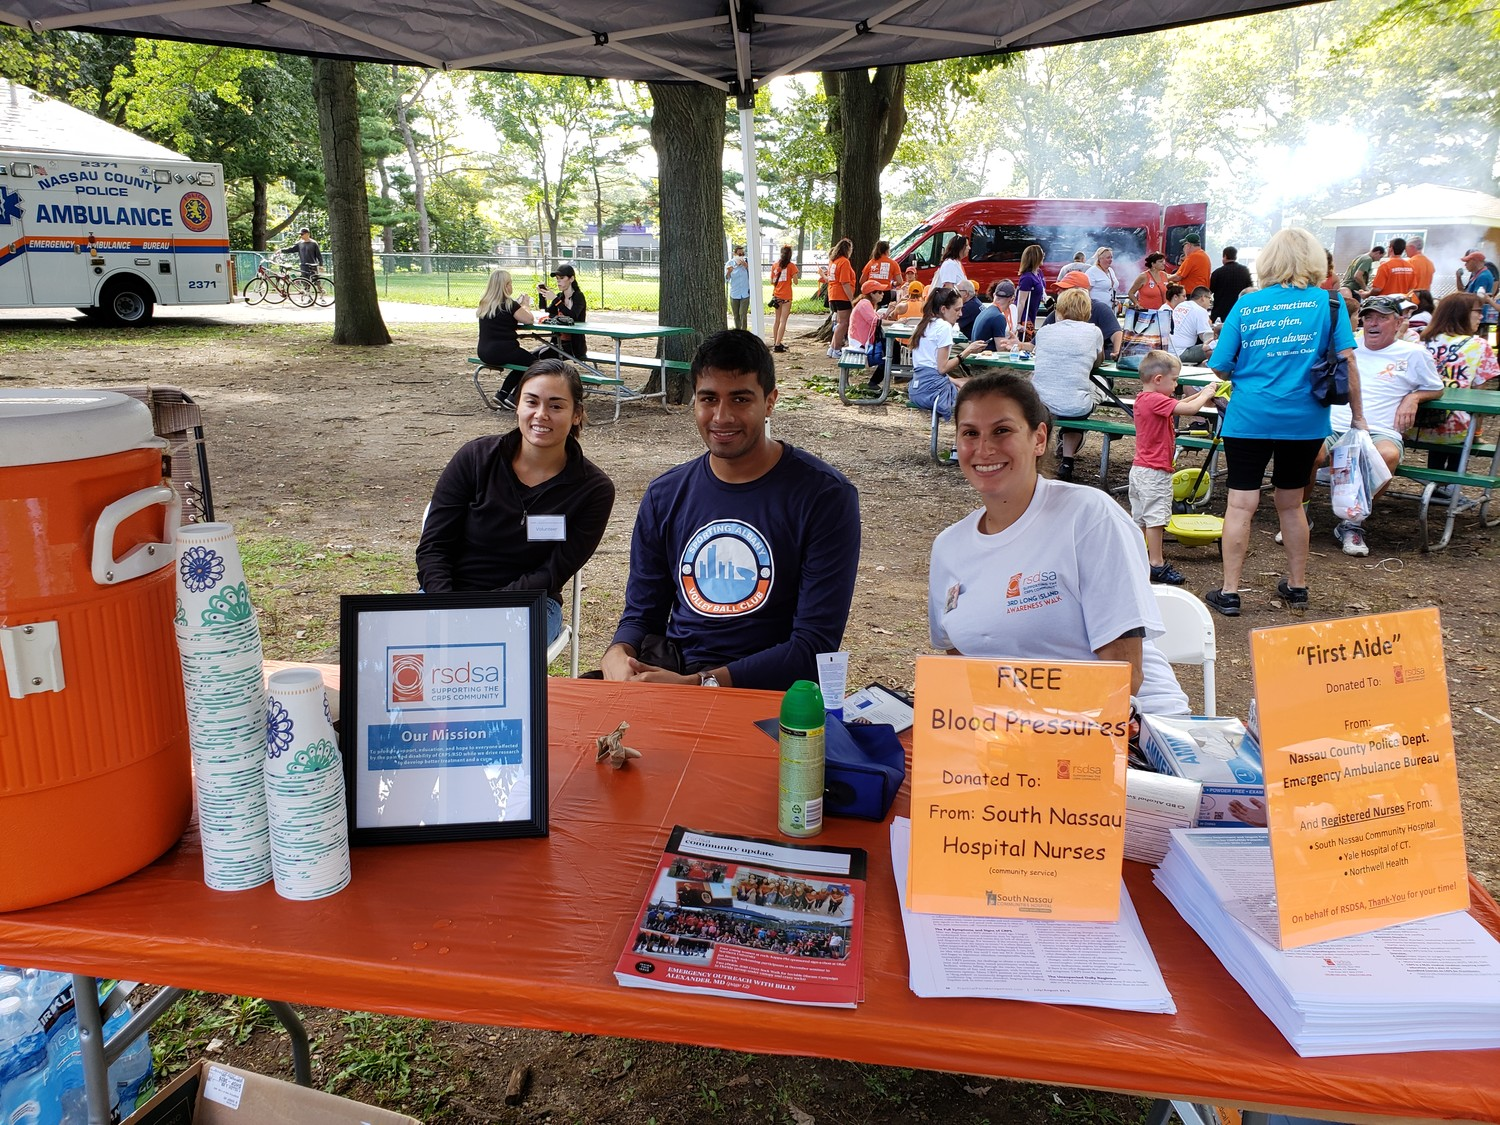 The Reflex Sympathetic Dystrophy Syndrome Association held its third annual walk at Eisenhower Park on Sept. 15.